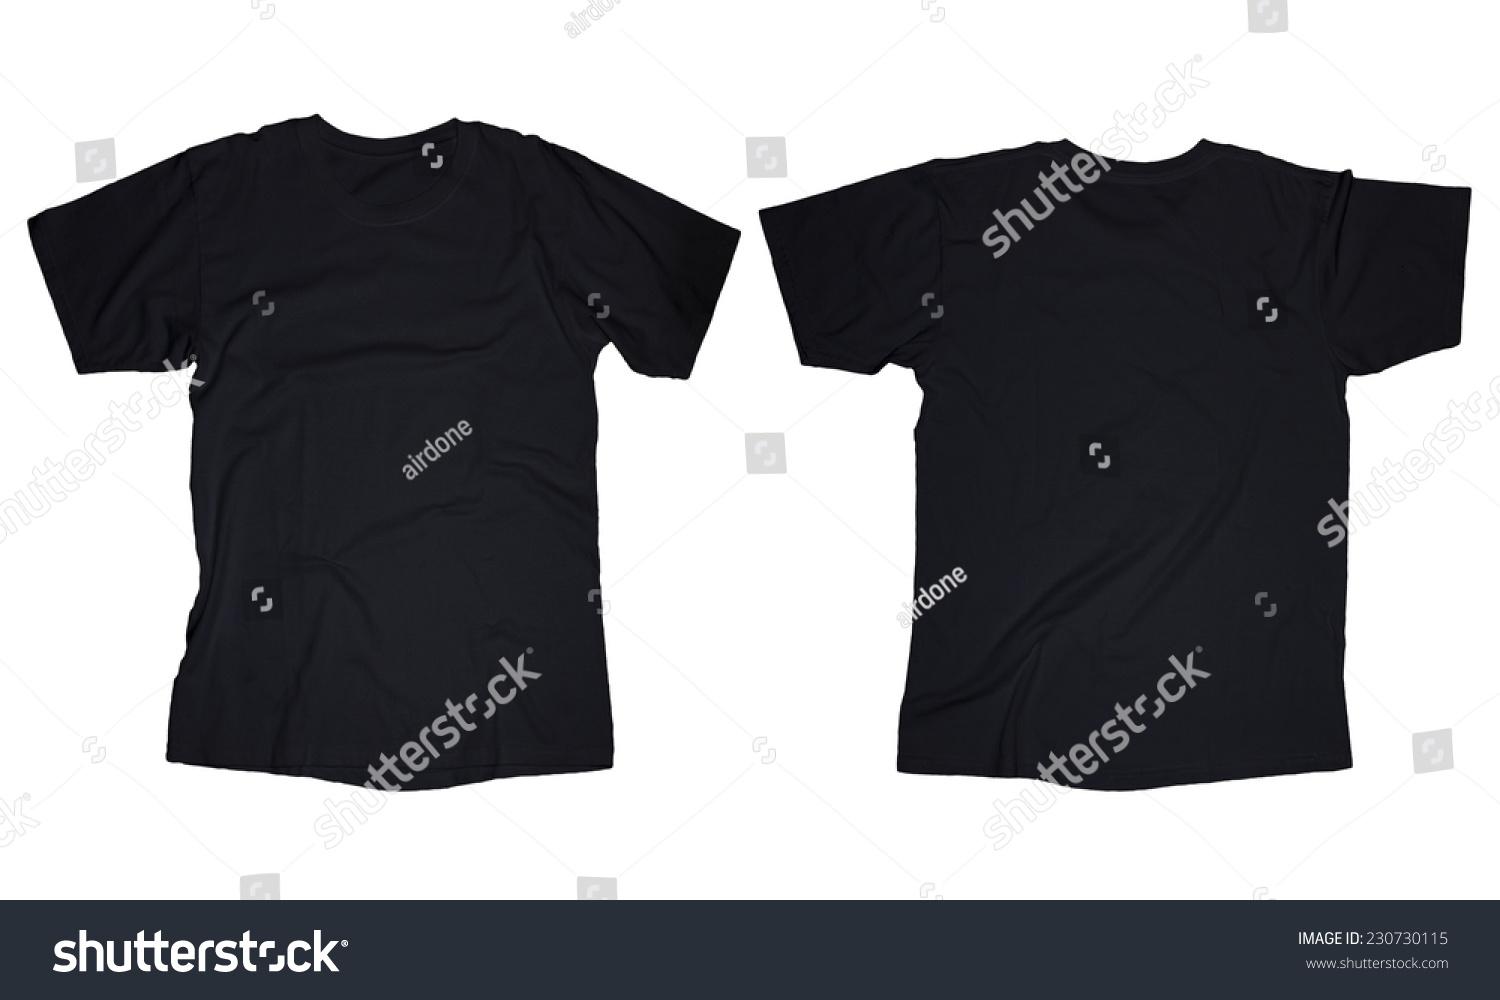 Black t shirt model template - Wrinkled Blank Black T Shirt Template Front And Back Design Isolated On White